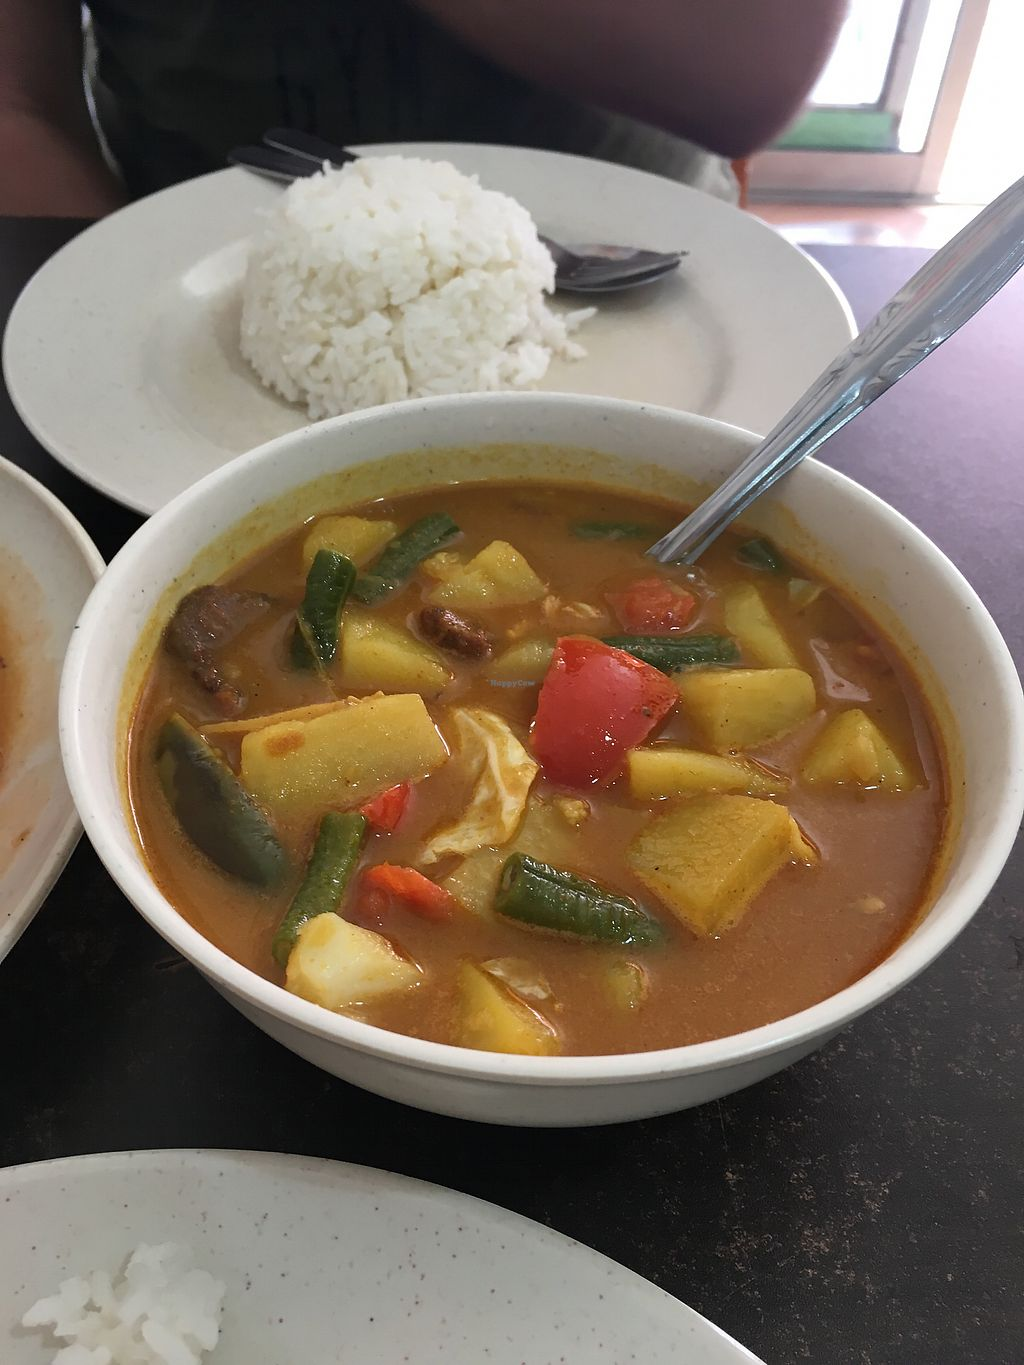 """Photo of Vege Garden  by <a href=""""/members/profile/Spaghetti_monster"""">Spaghetti_monster</a> <br/>Potato and vegetable curry (vegan, no milk) <br/> April 16, 2018  - <a href='/contact/abuse/image/41311/386661'>Report</a>"""